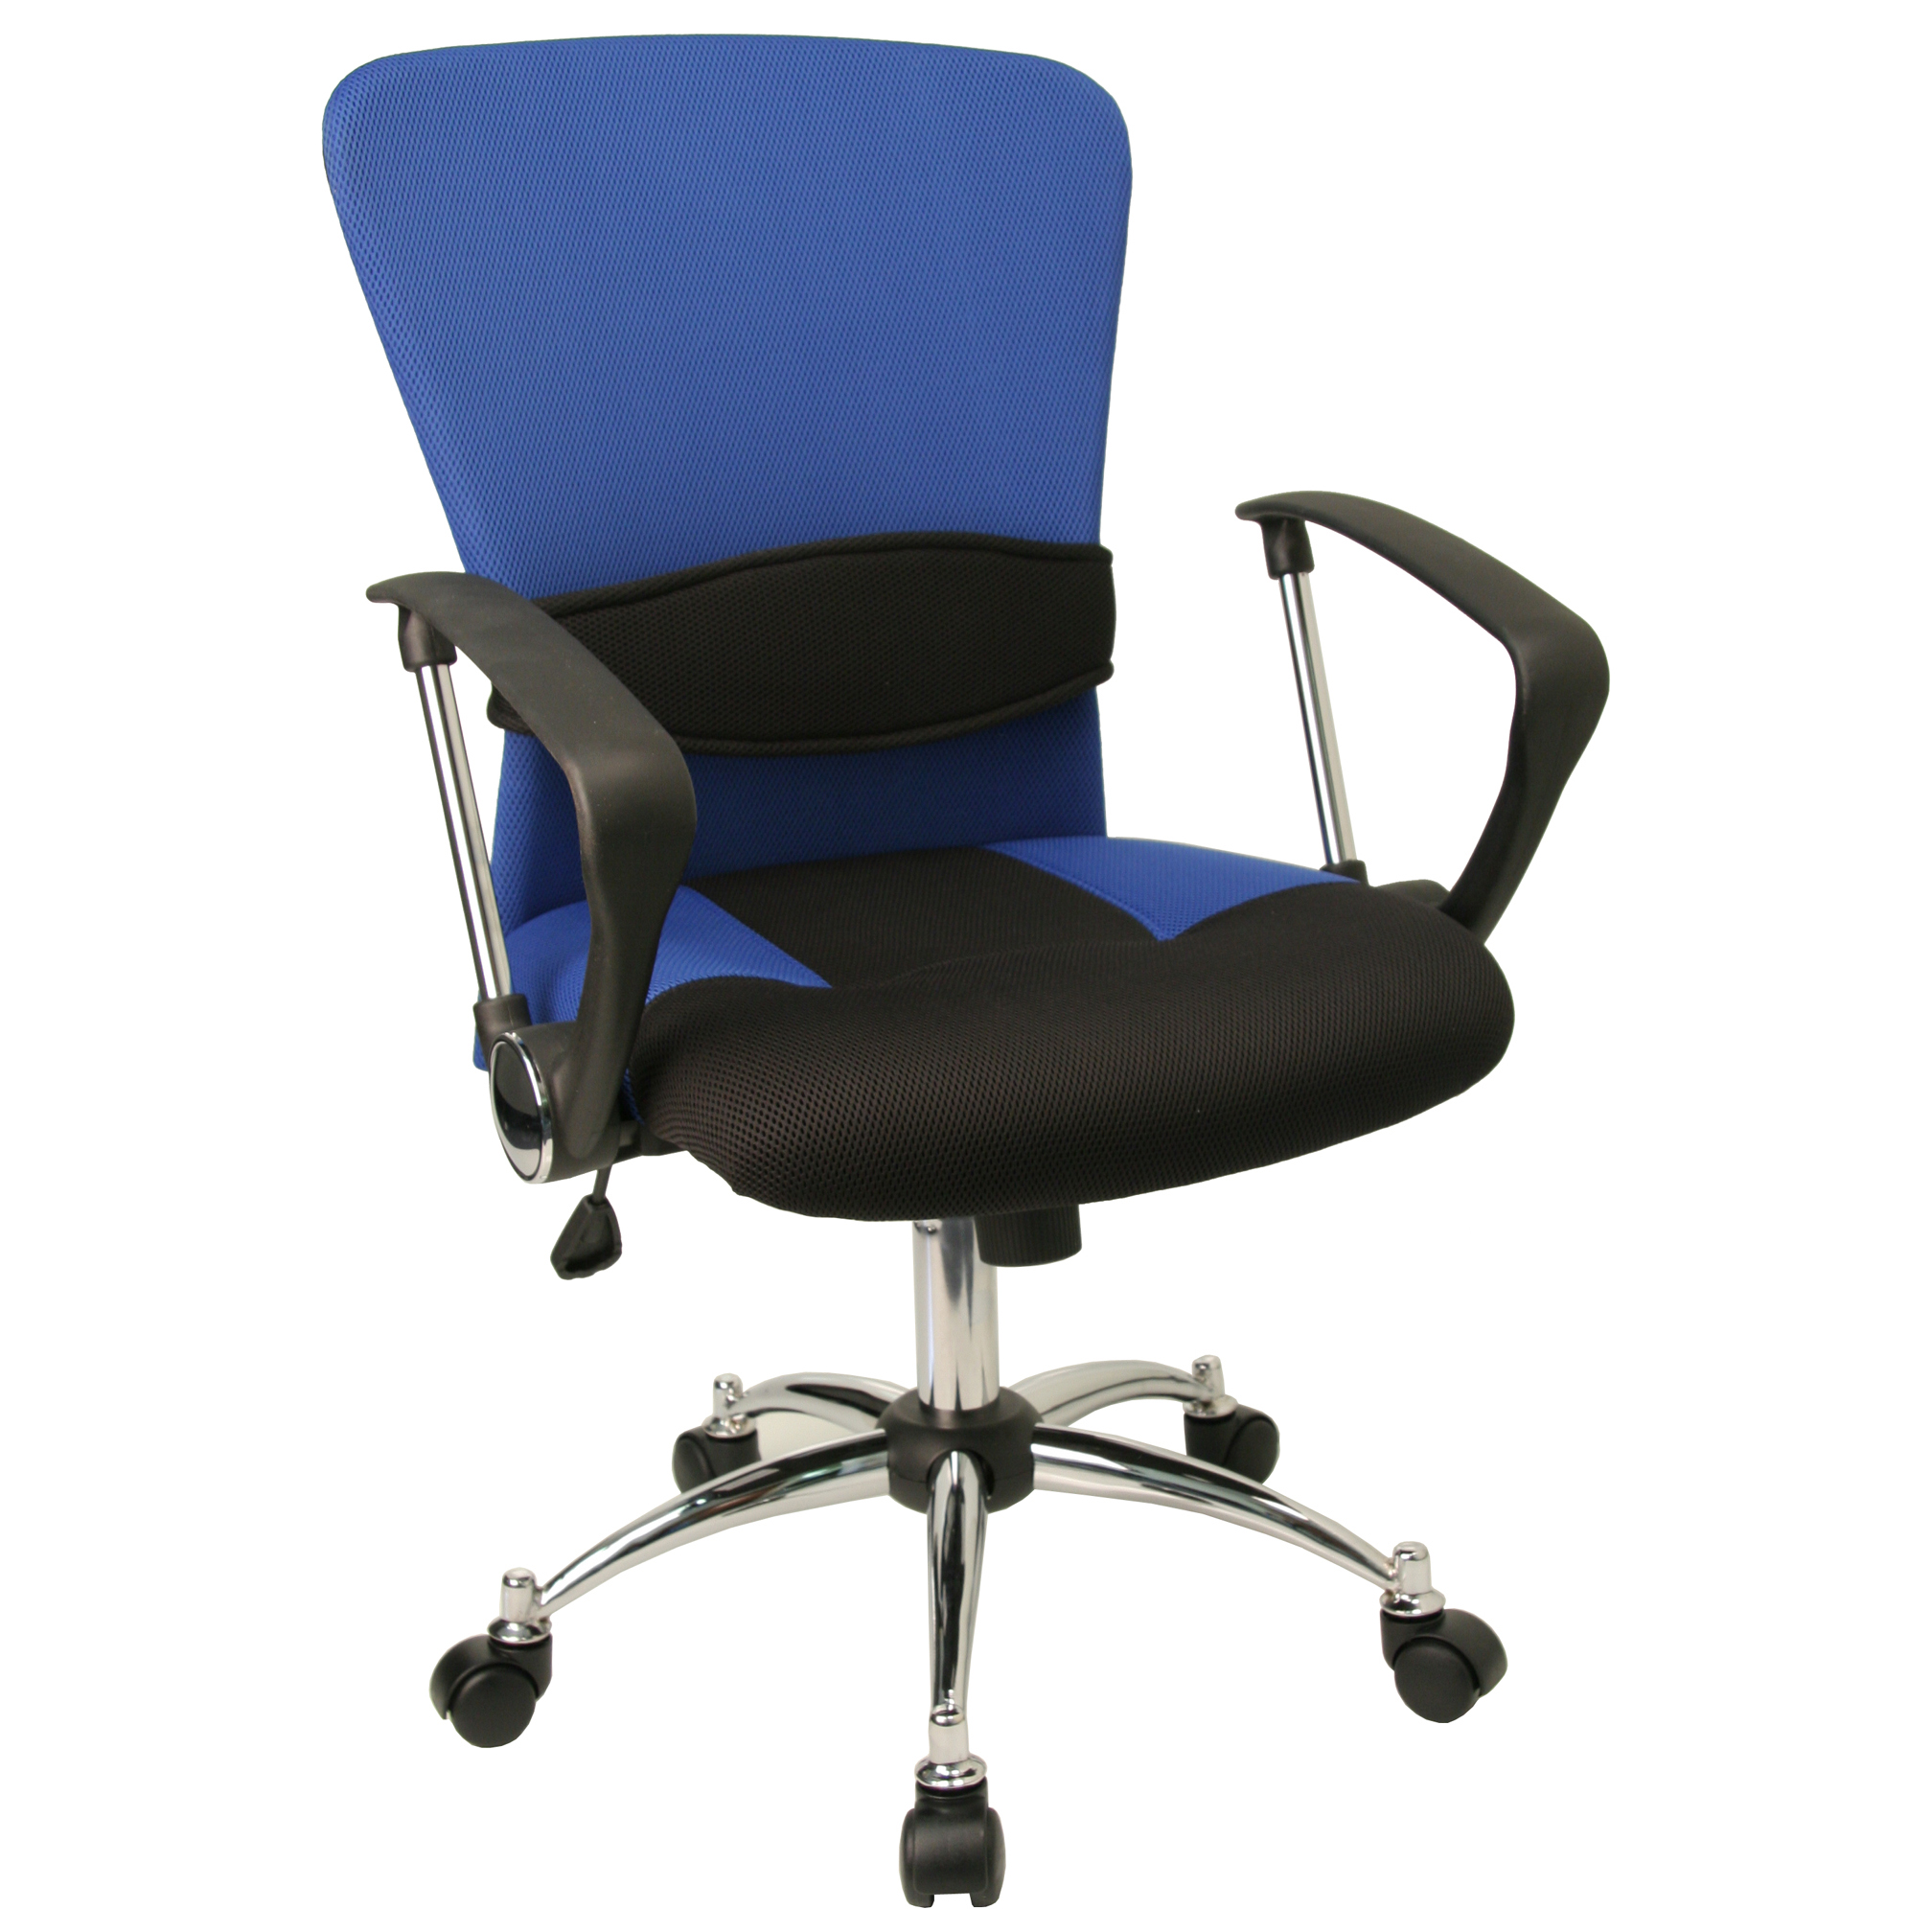 black office mesh best w home chair products rakuten ergonomic bestchoiceproducts desk computer design chrome shop choice product